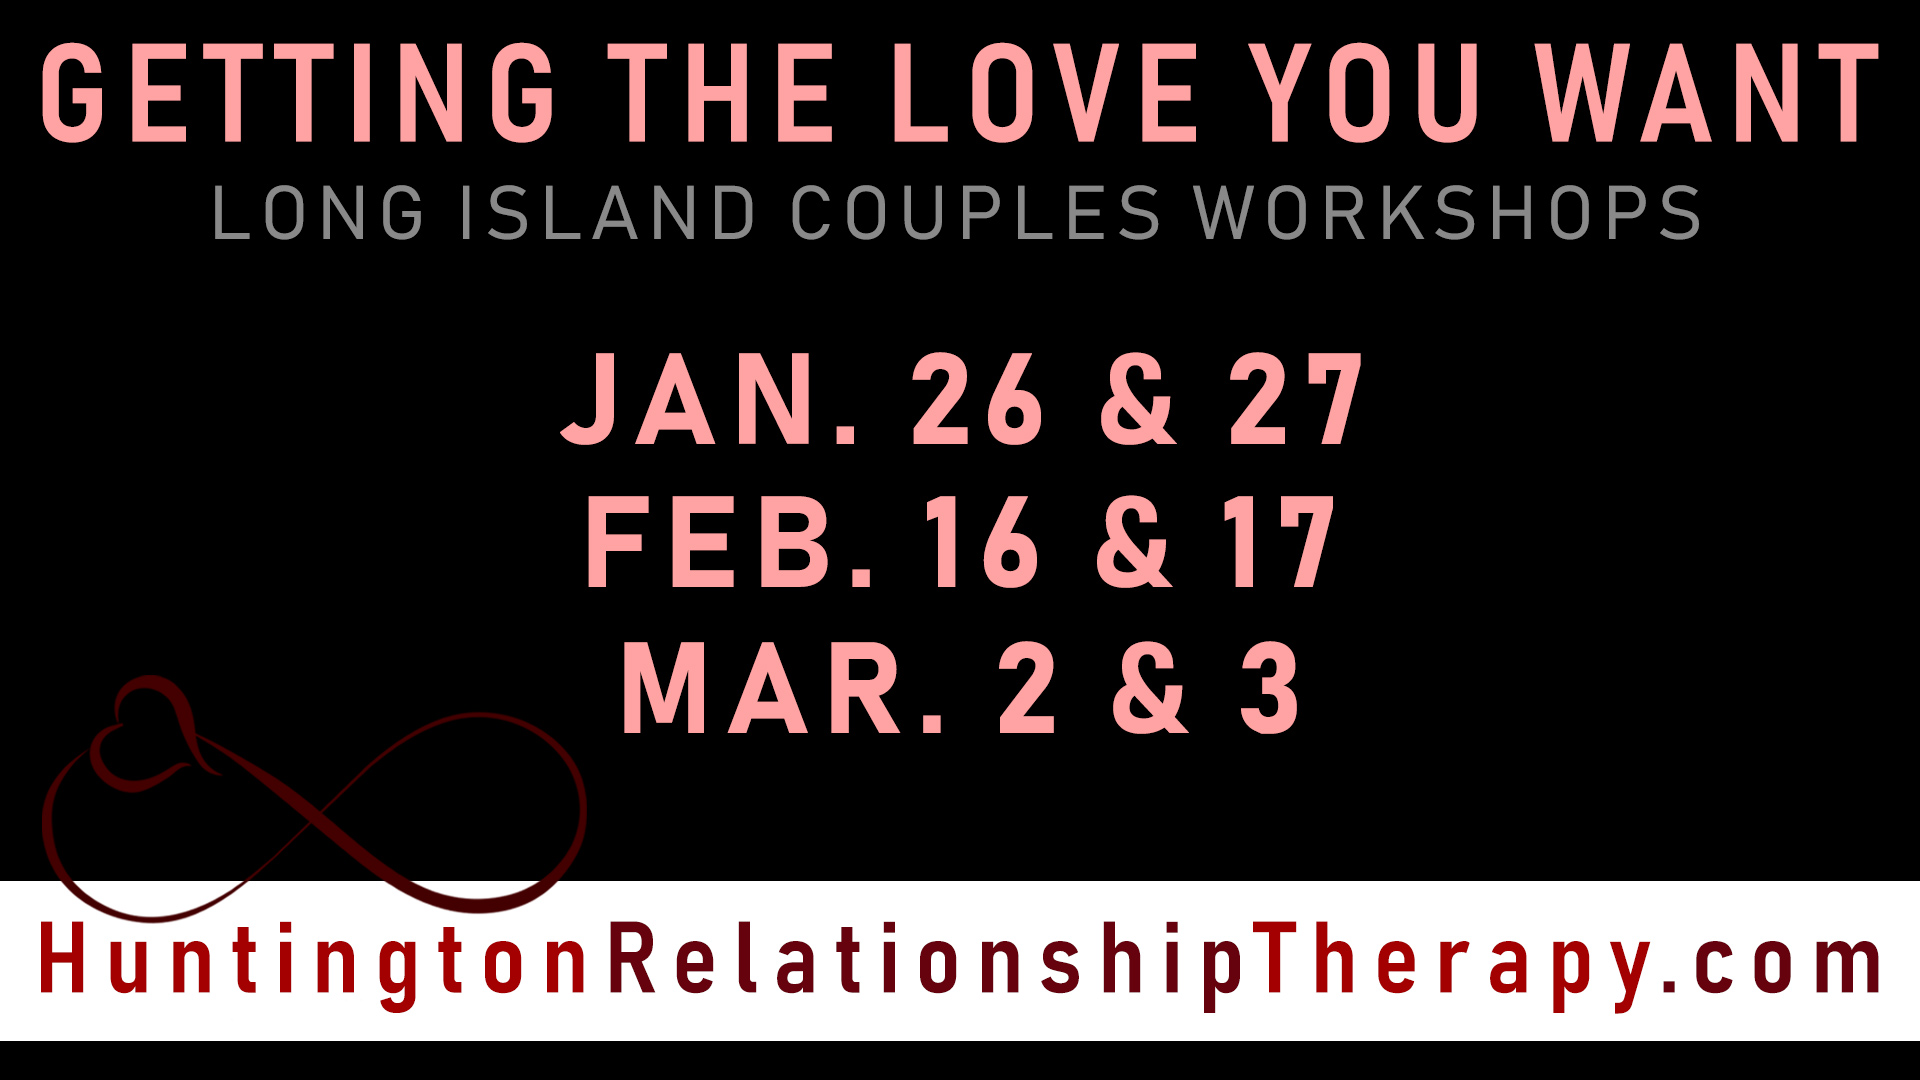 Getting The Love You Want Couples Workshops - JAN FEB MAR 2019